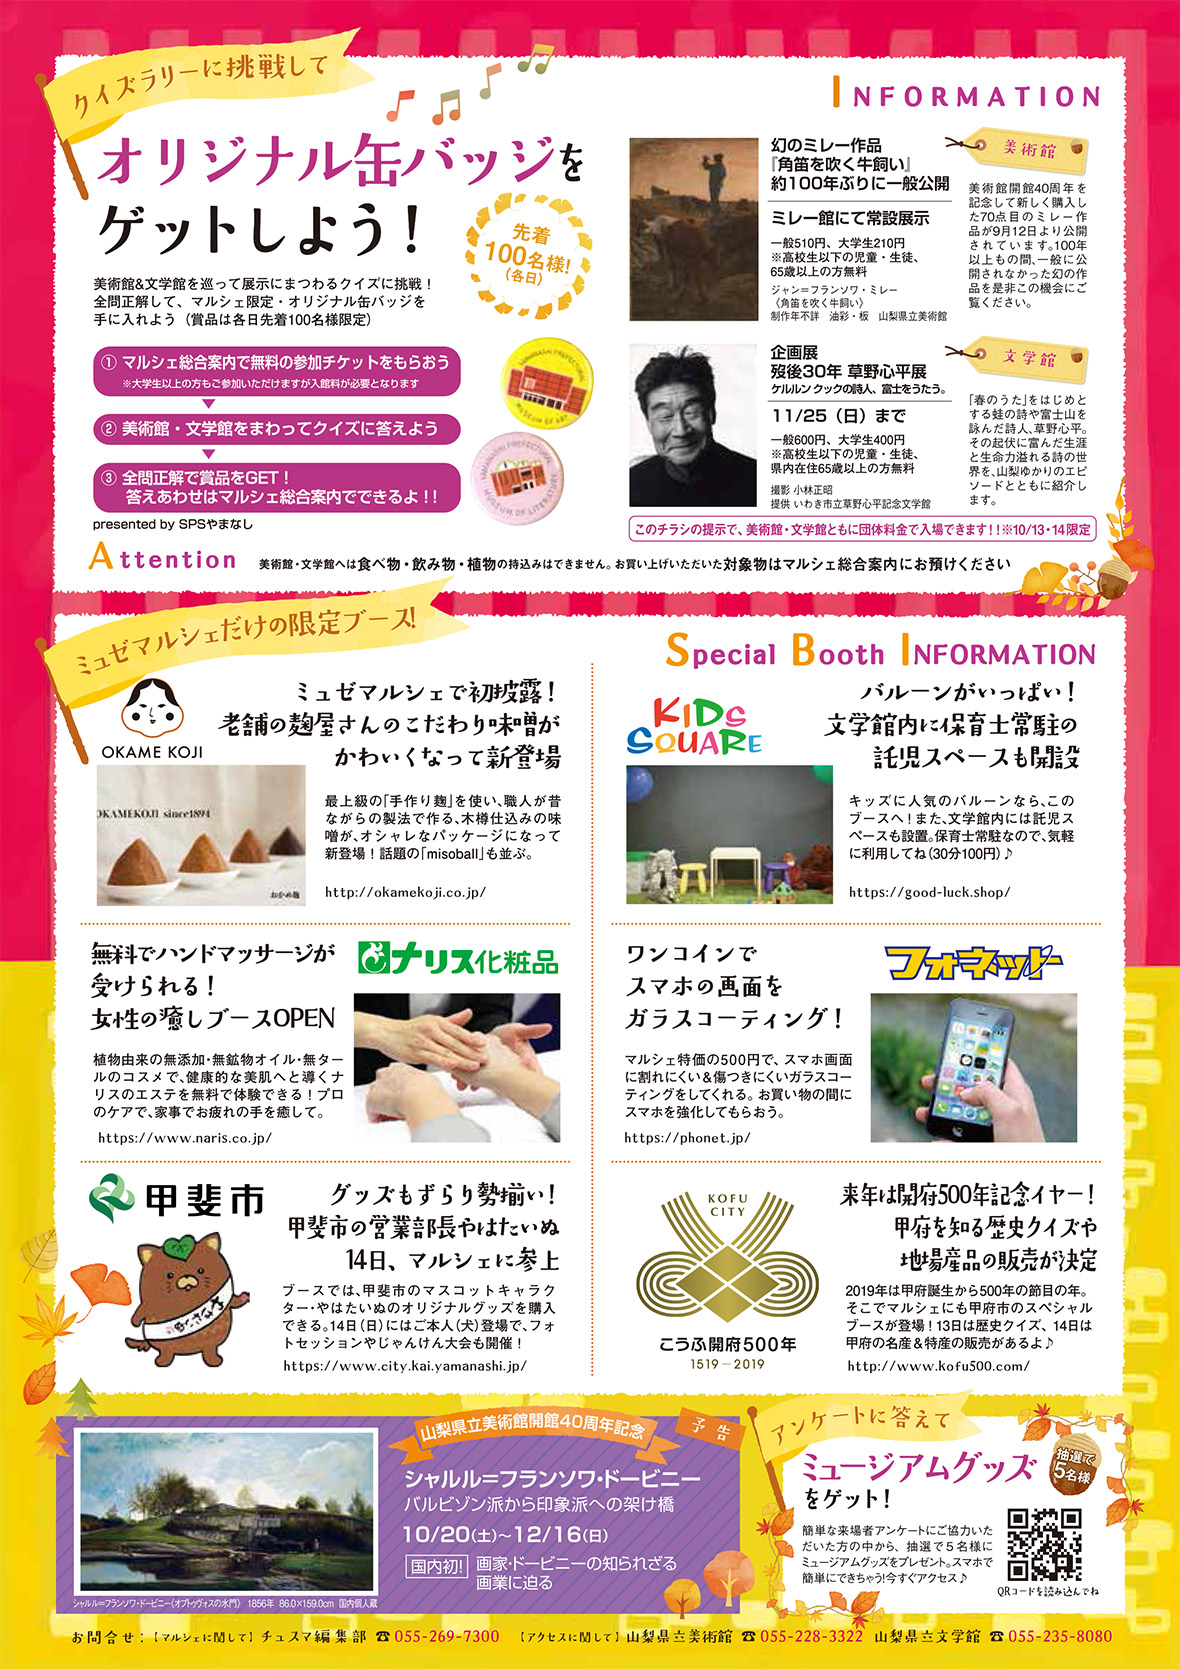 Musee Marche(ミュゼ マルシェ)のイベント案内